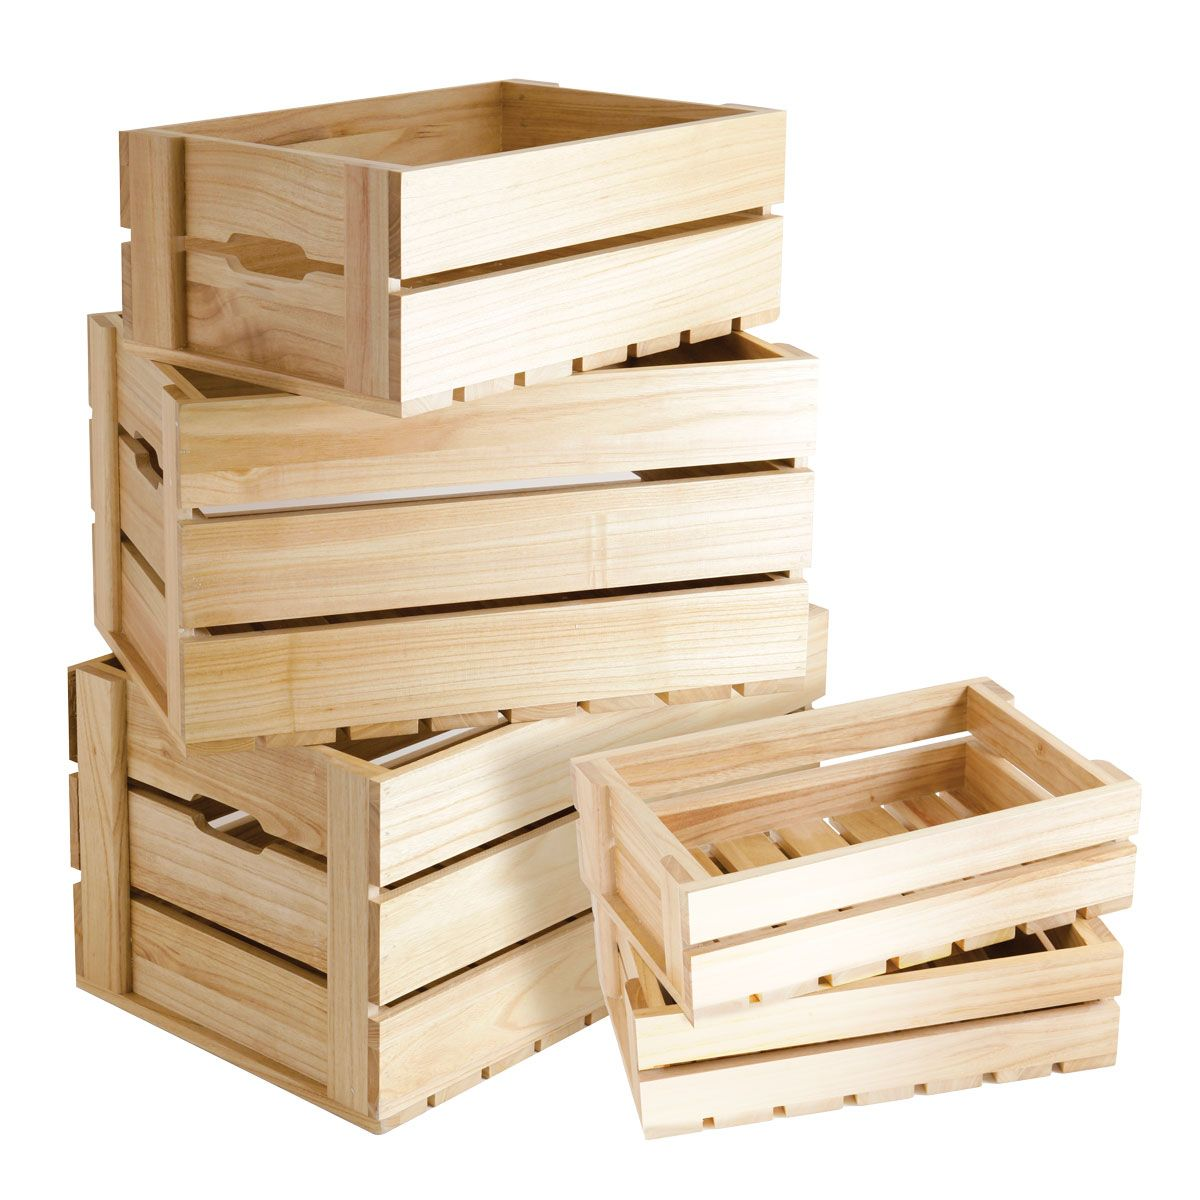 Advantages Of Wood Crates Small Wooden Crates Wooden Display Box Wooden Crates